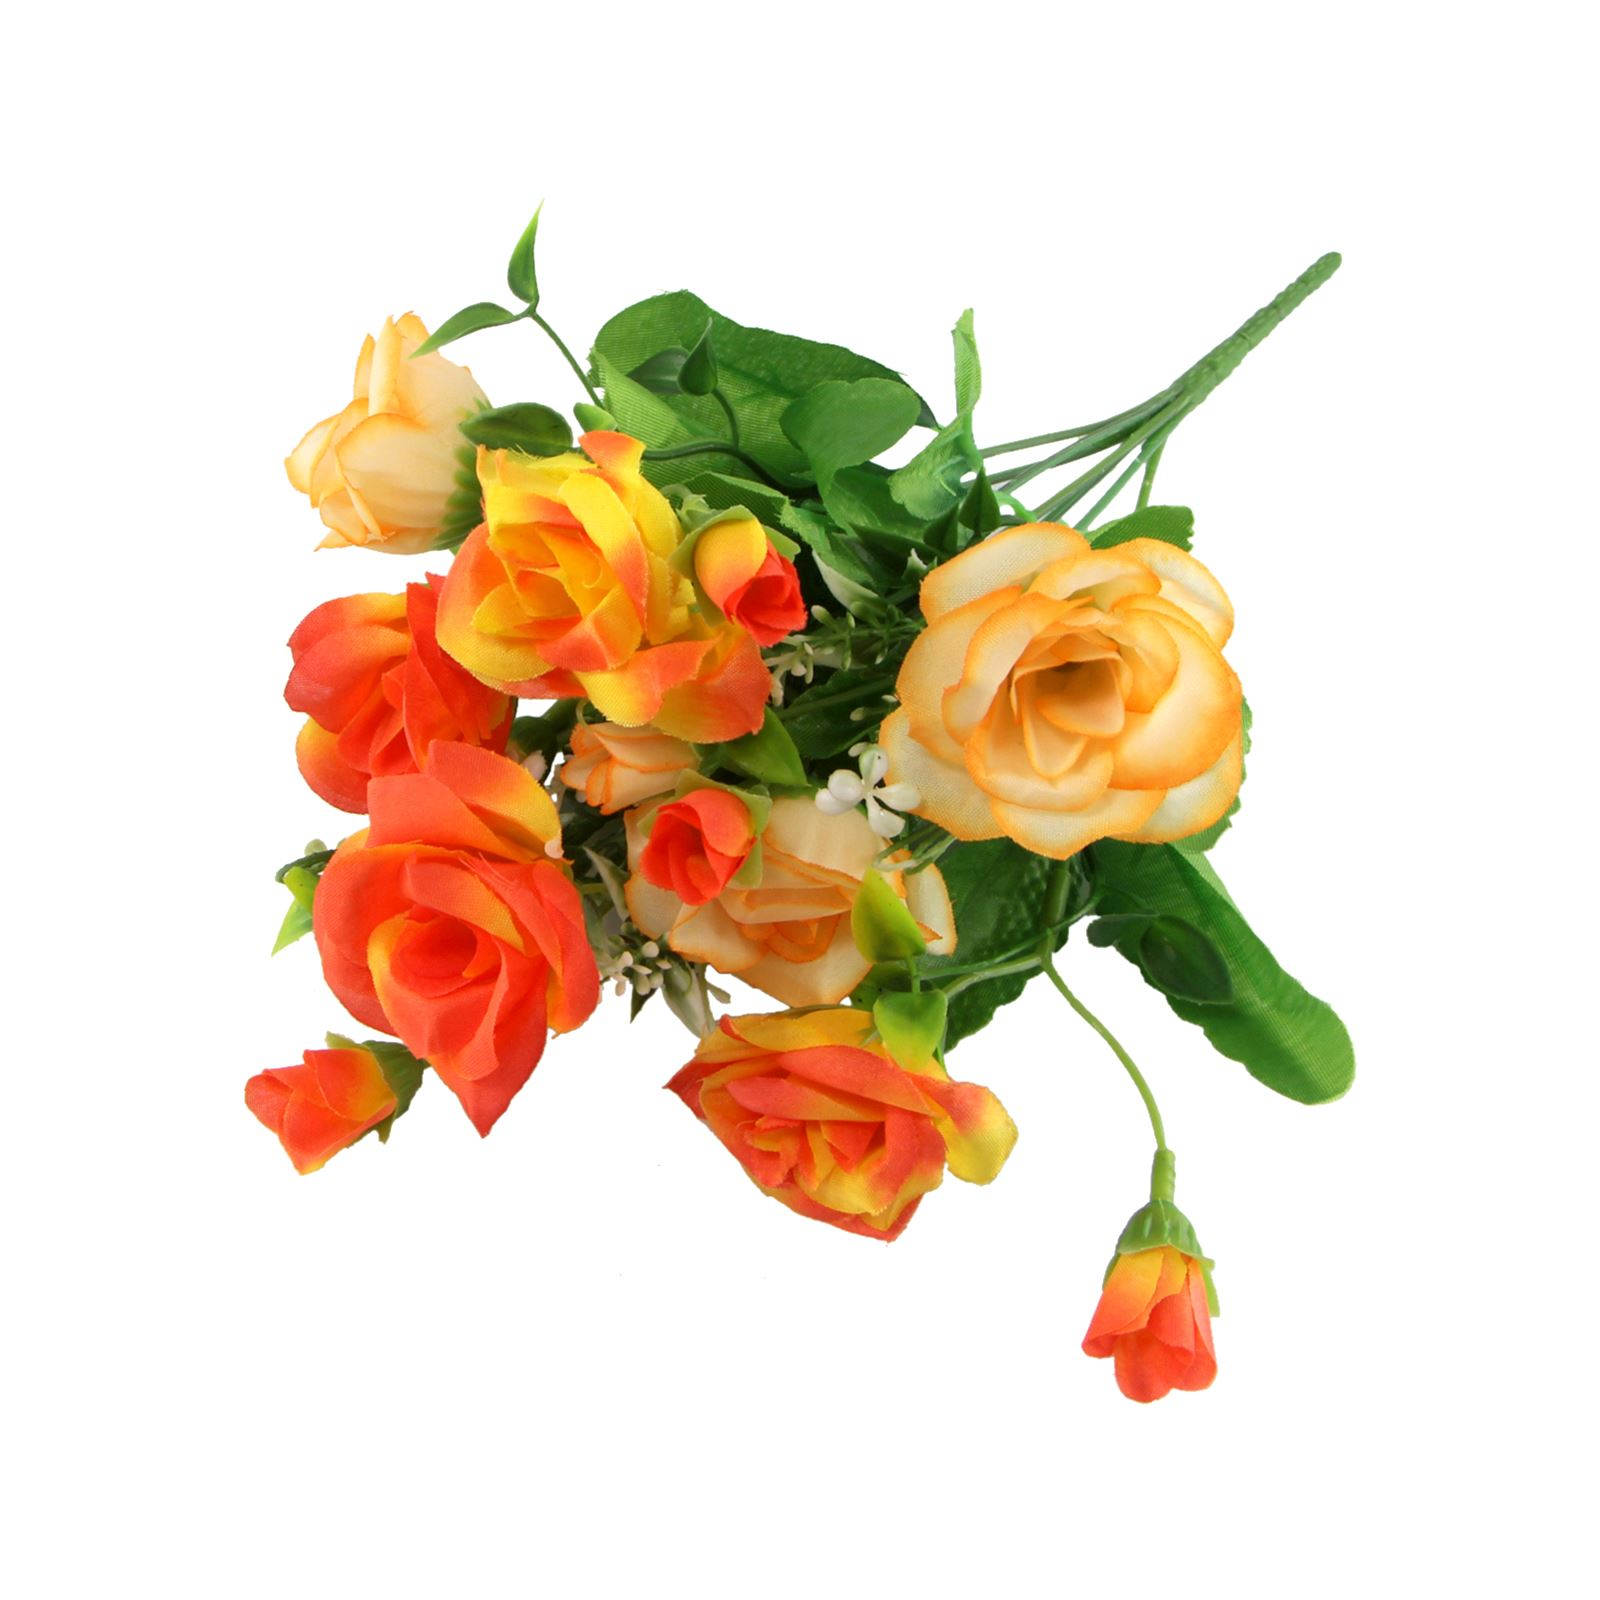 Two Toned Lisianthus Bouquet Small Artificial Flowers Bunch